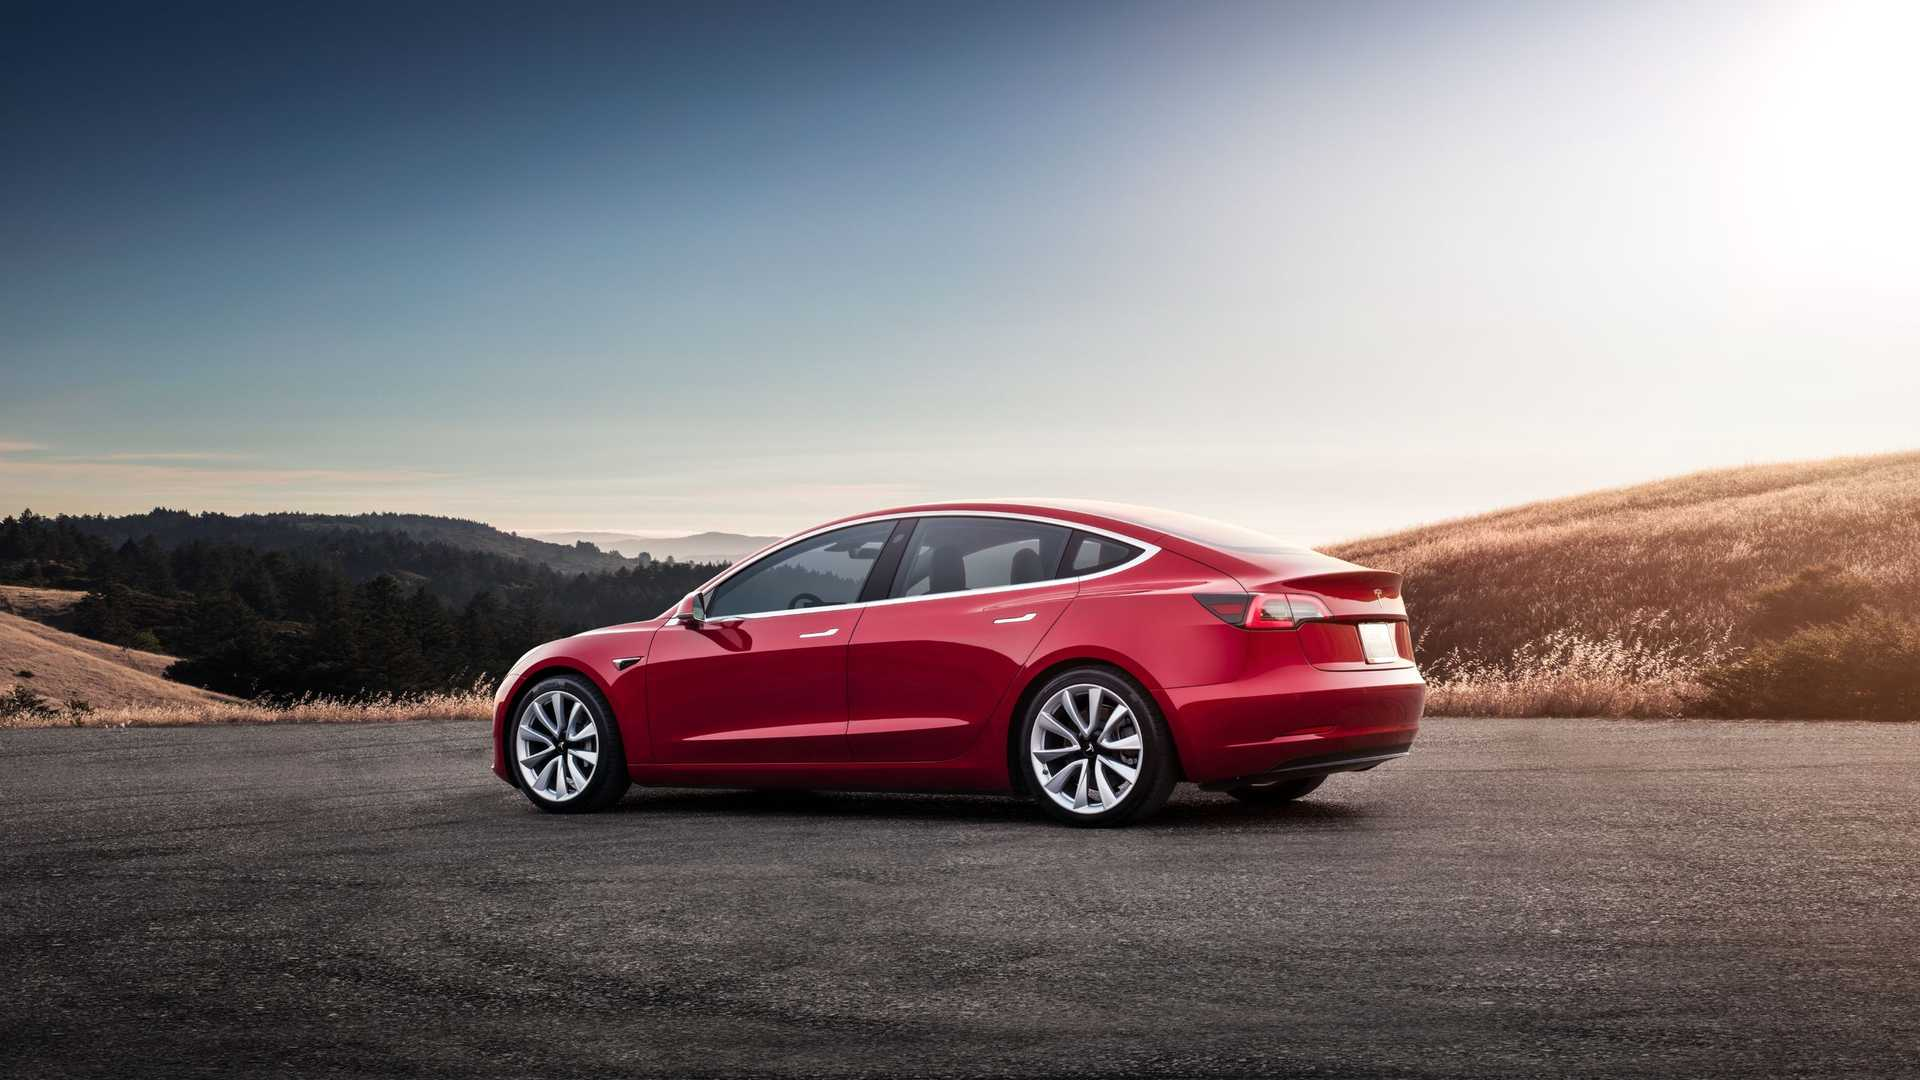 Wallpaper Wednesday Featuring The Tesla Model S X And 3